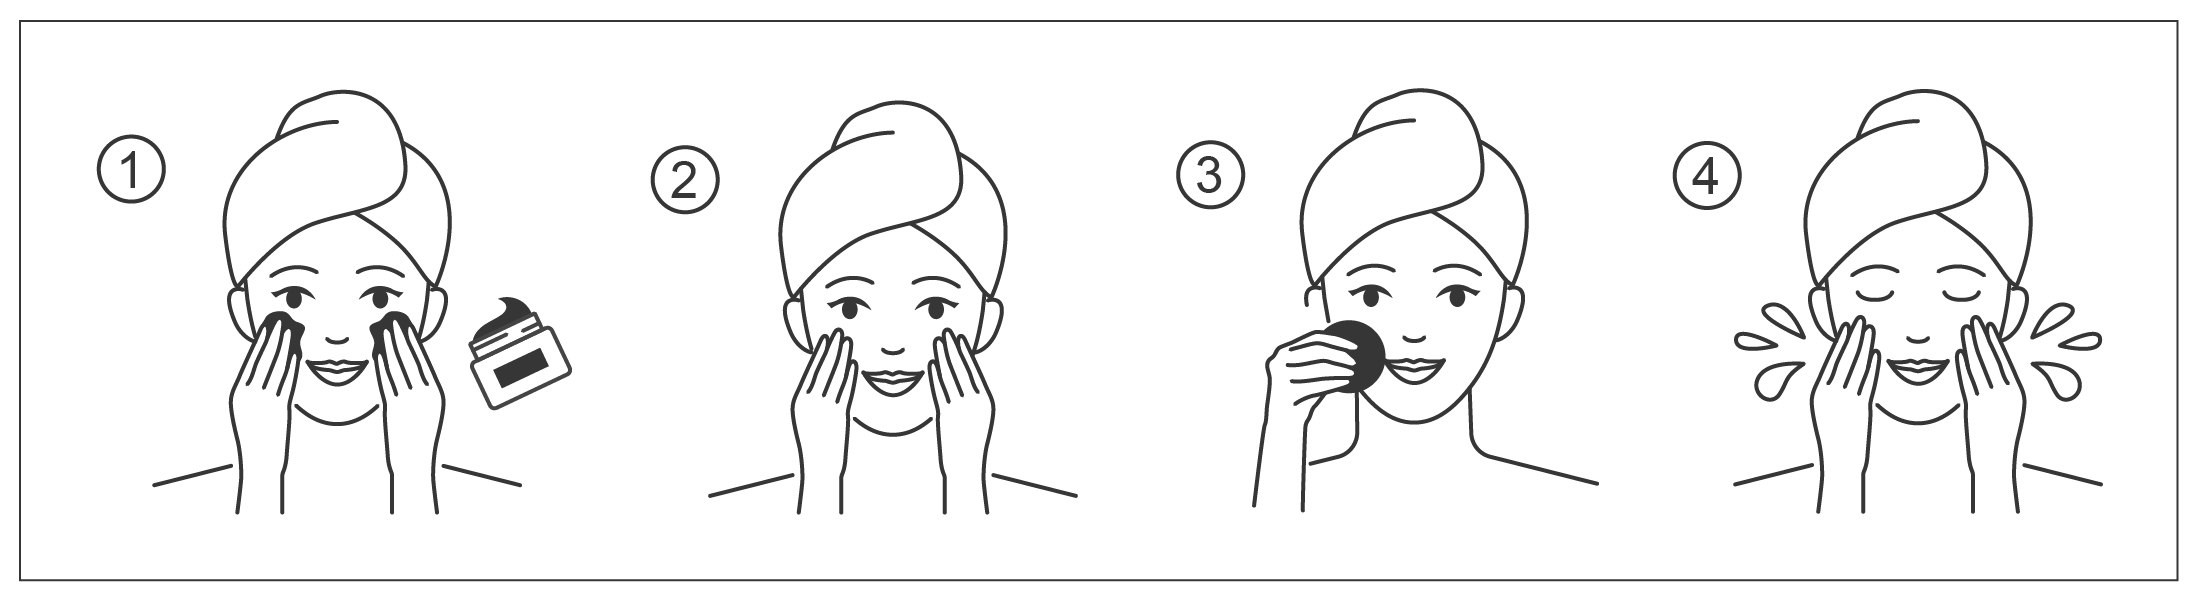 How to Use Coconut Oil to Remove Makeup Step by Step